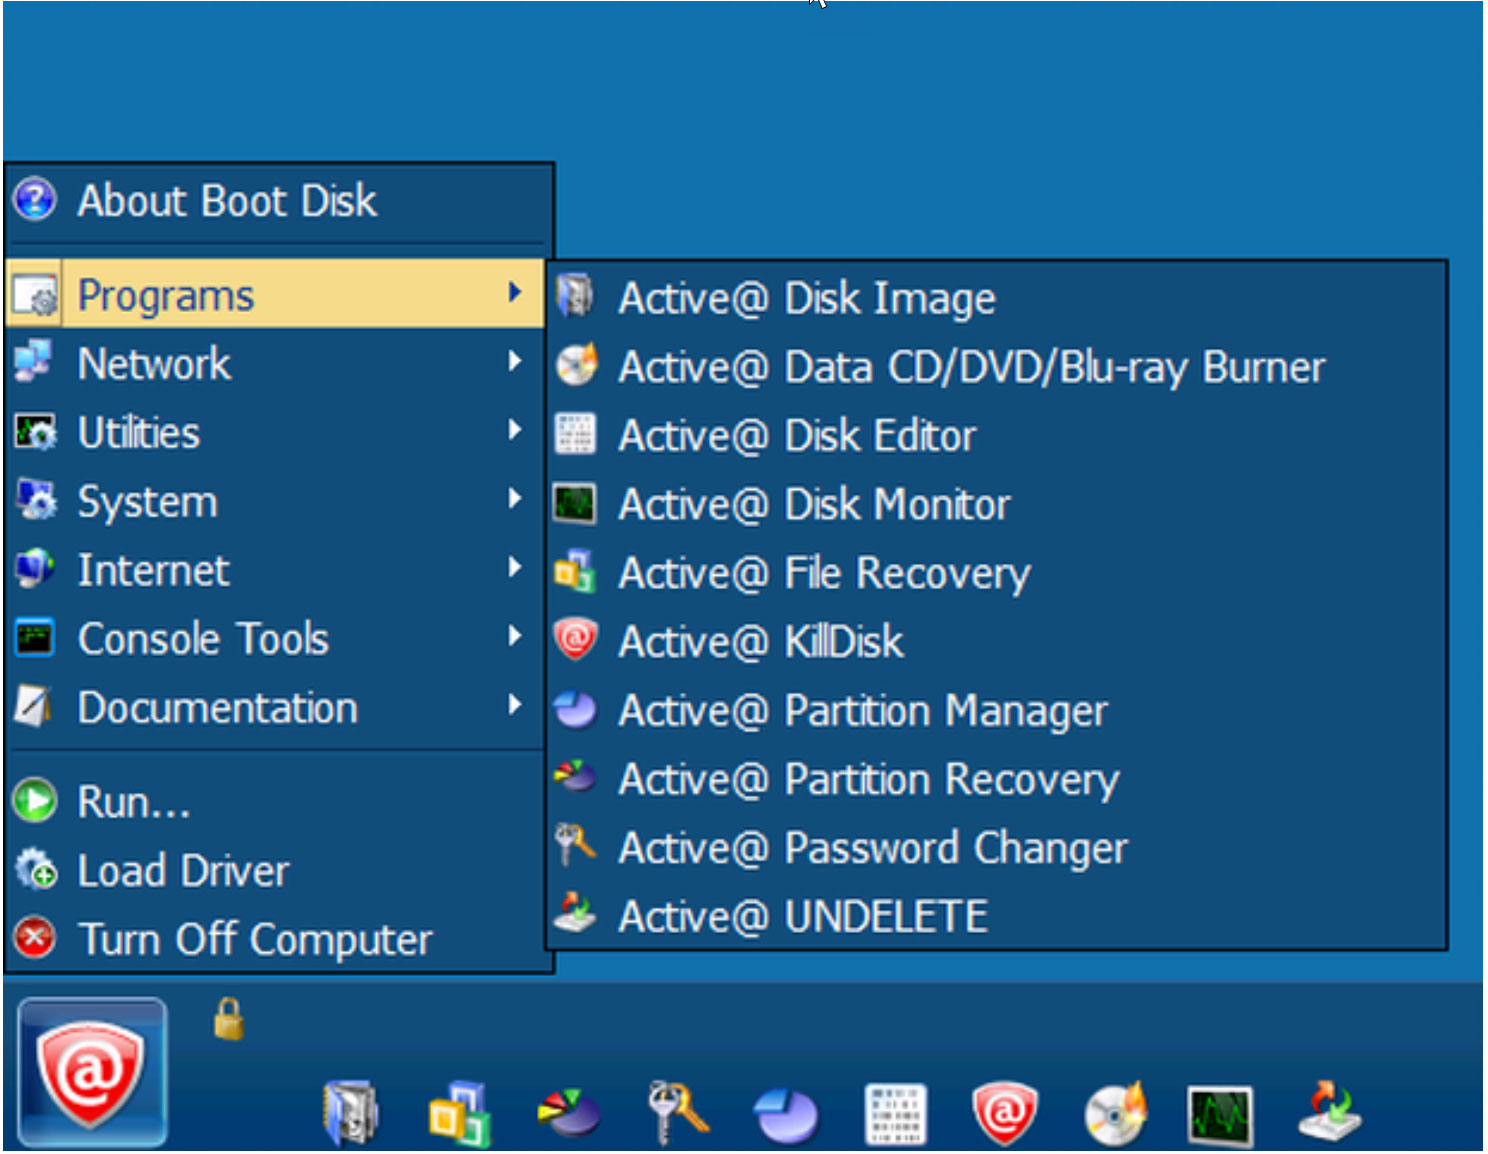 Active@ UNDELETE in Active@ Boot Disk